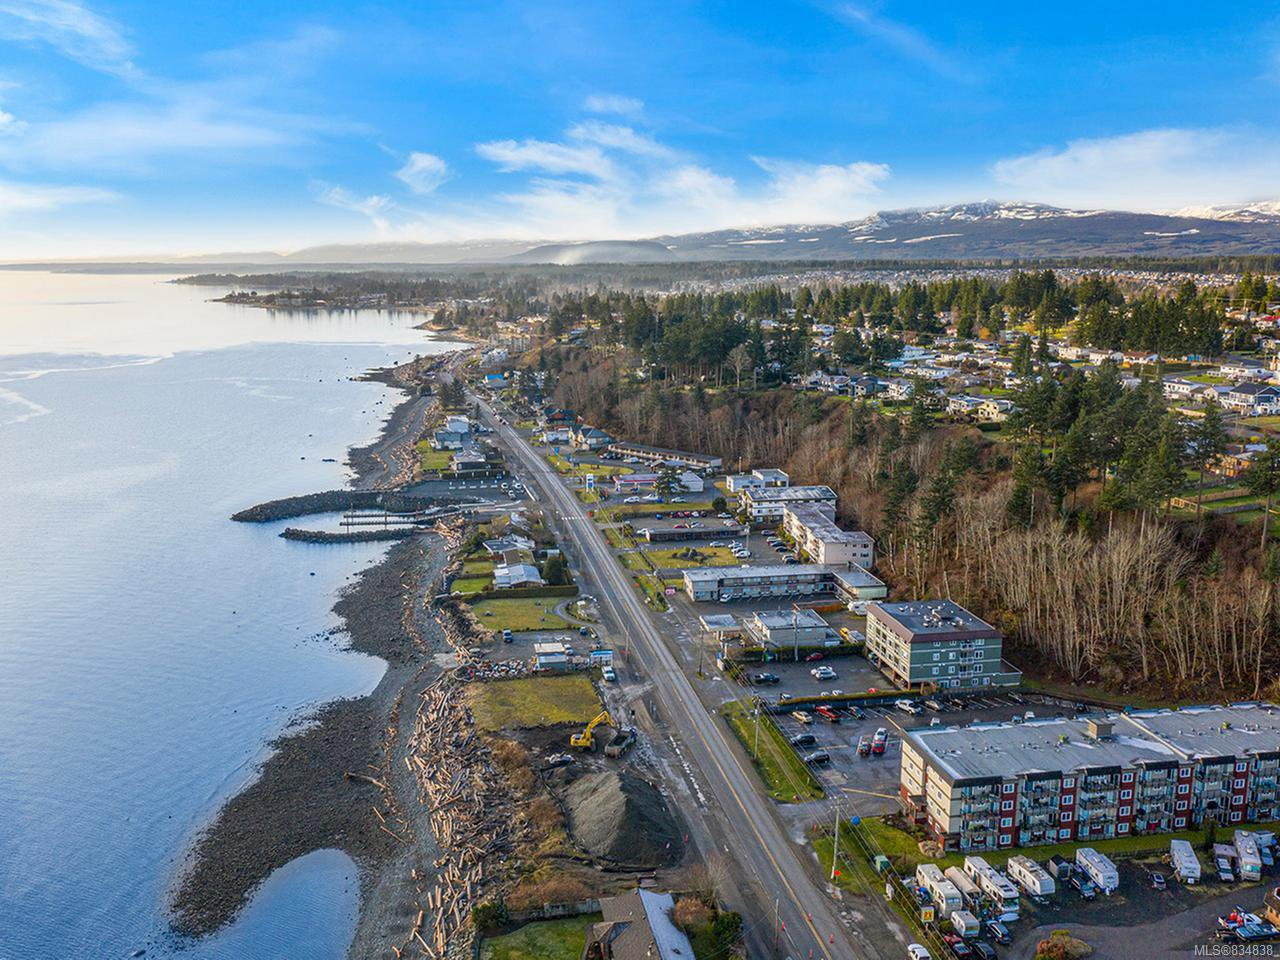 Main Photo: 301 894 S Island Hwy in CAMPBELL RIVER: CR Campbell River Central Condo for sale (Campbell River)  : MLS®# 834838